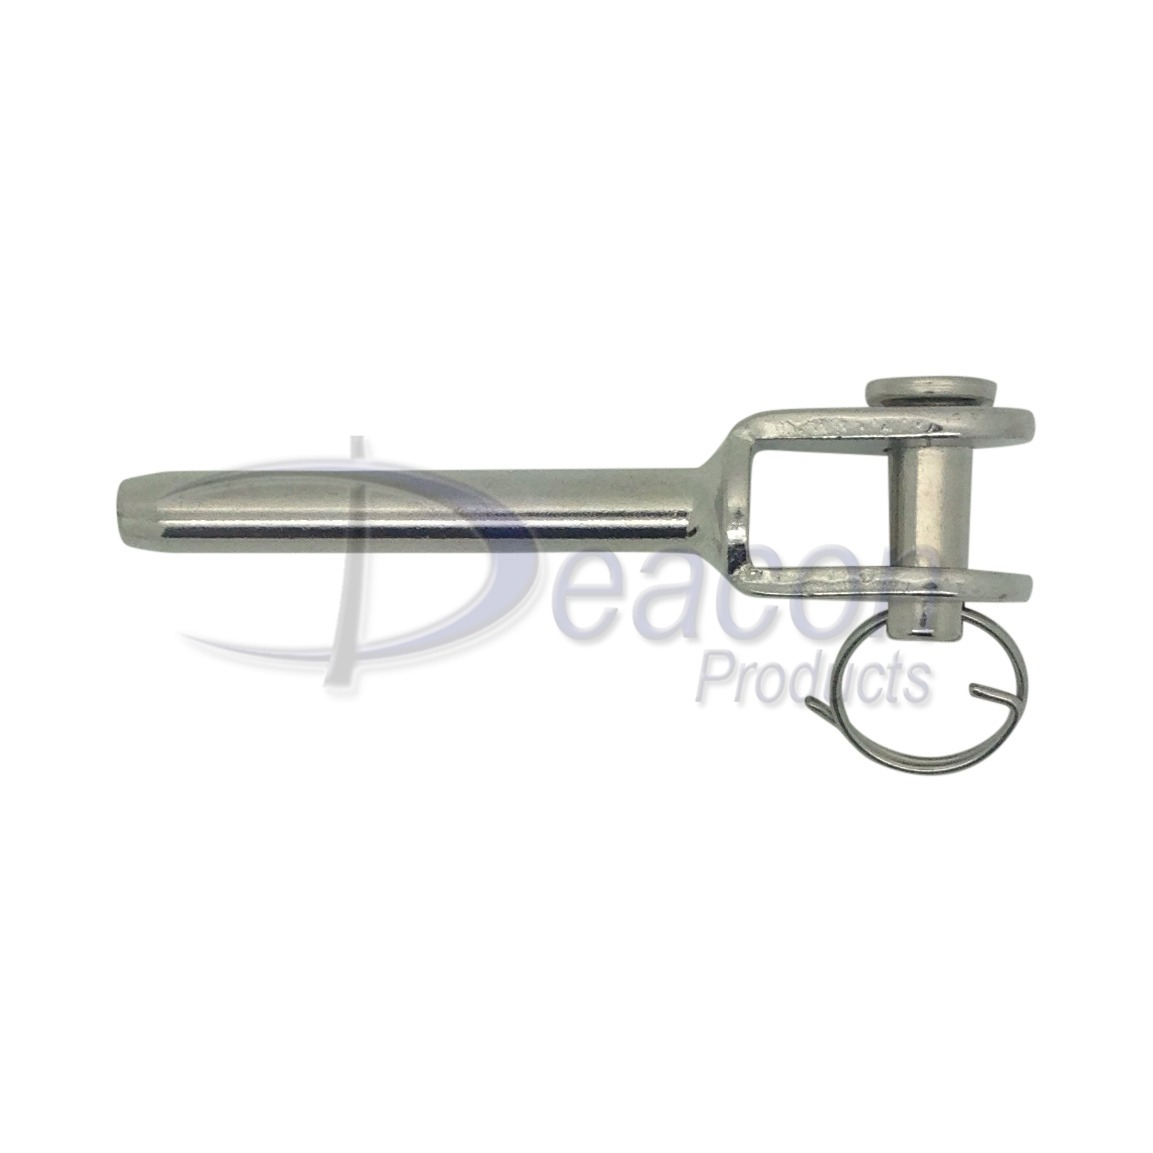 stainless-steel-swage-jaw-terminal